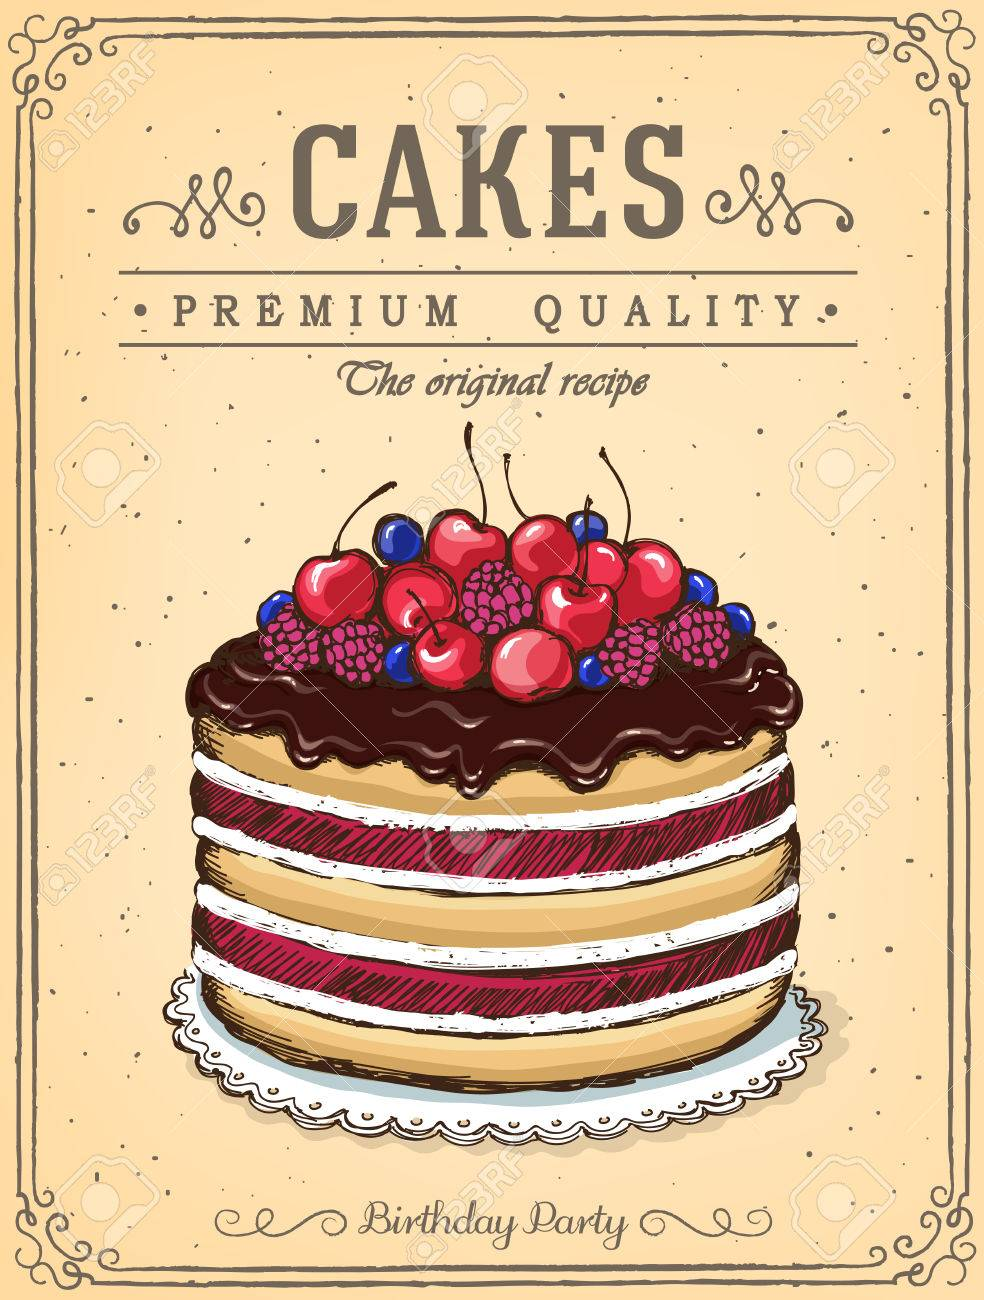 Chocolate Cake With Berries Vintage Poster Best Cakes Imitation